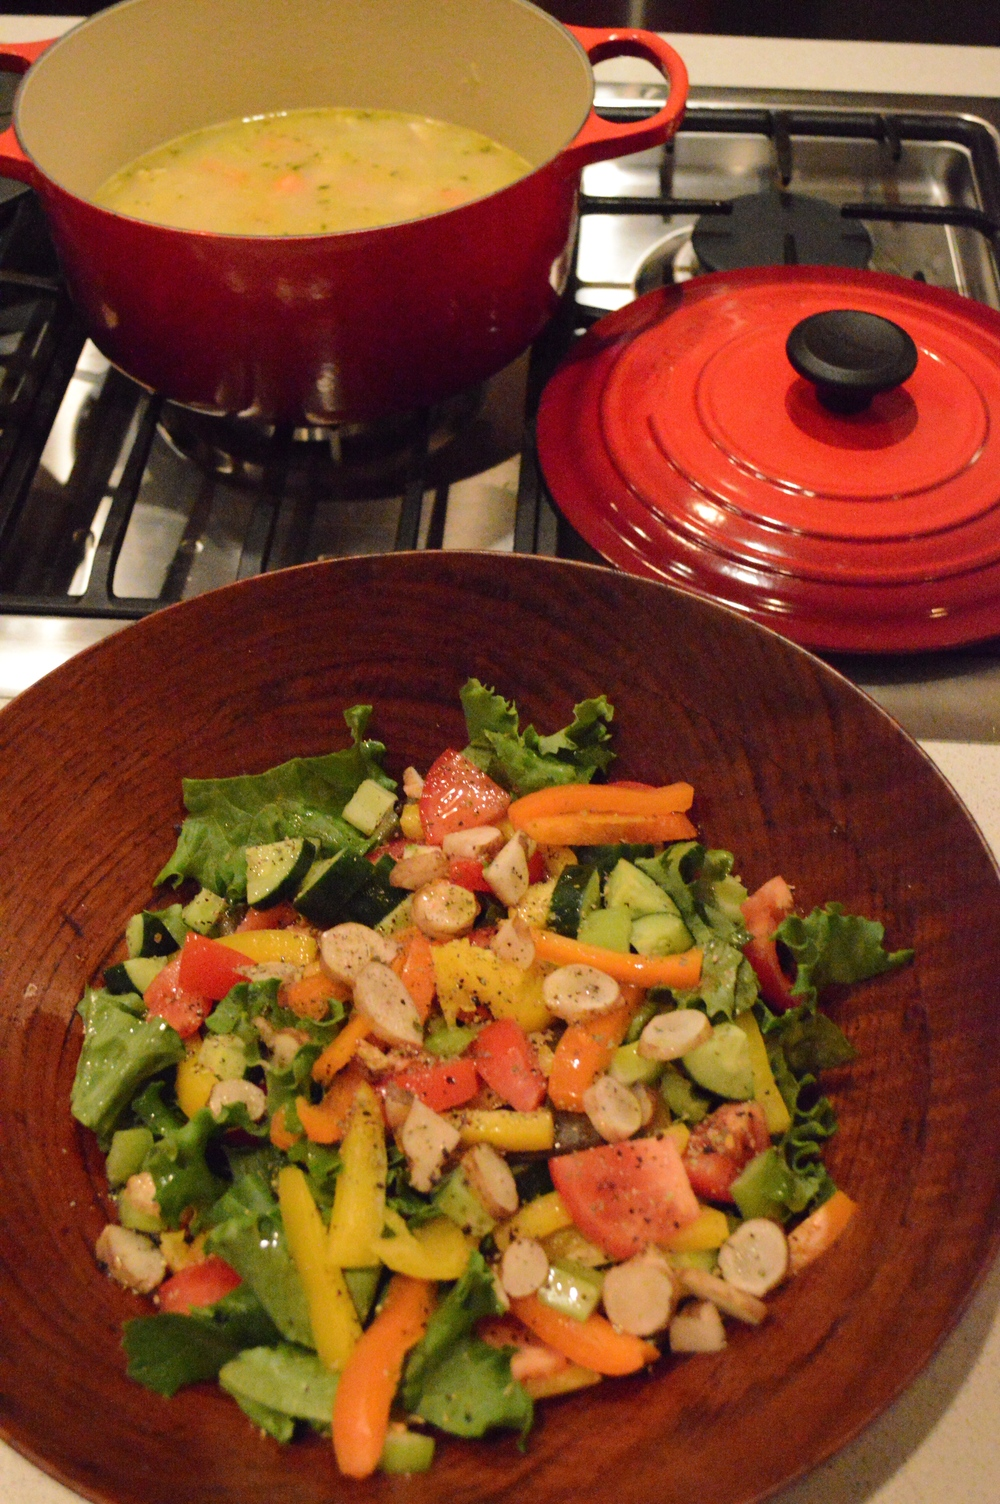 Lauren-Schwaiger-Blog-Clean-Eating-Salad+ChickenSoup.jpg